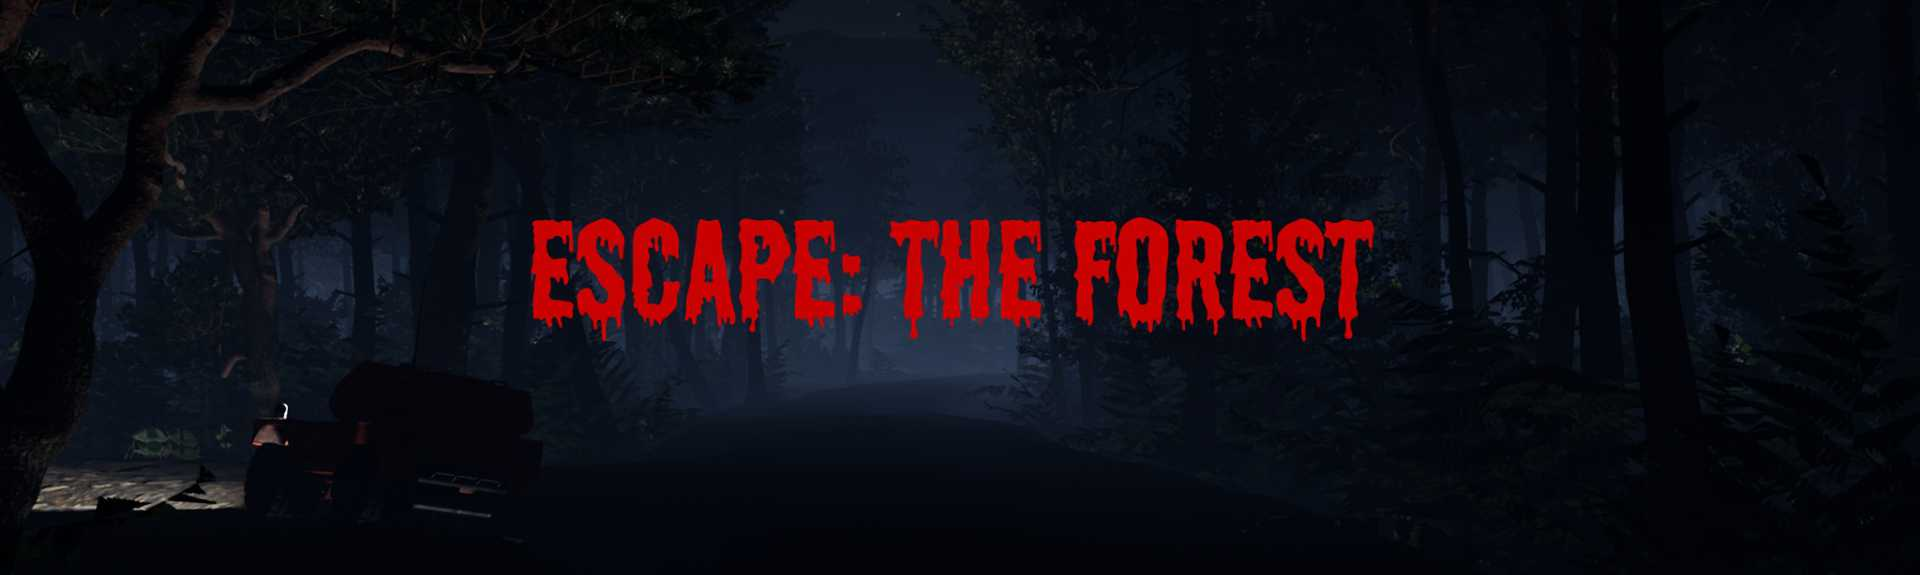 Escape: The Forest